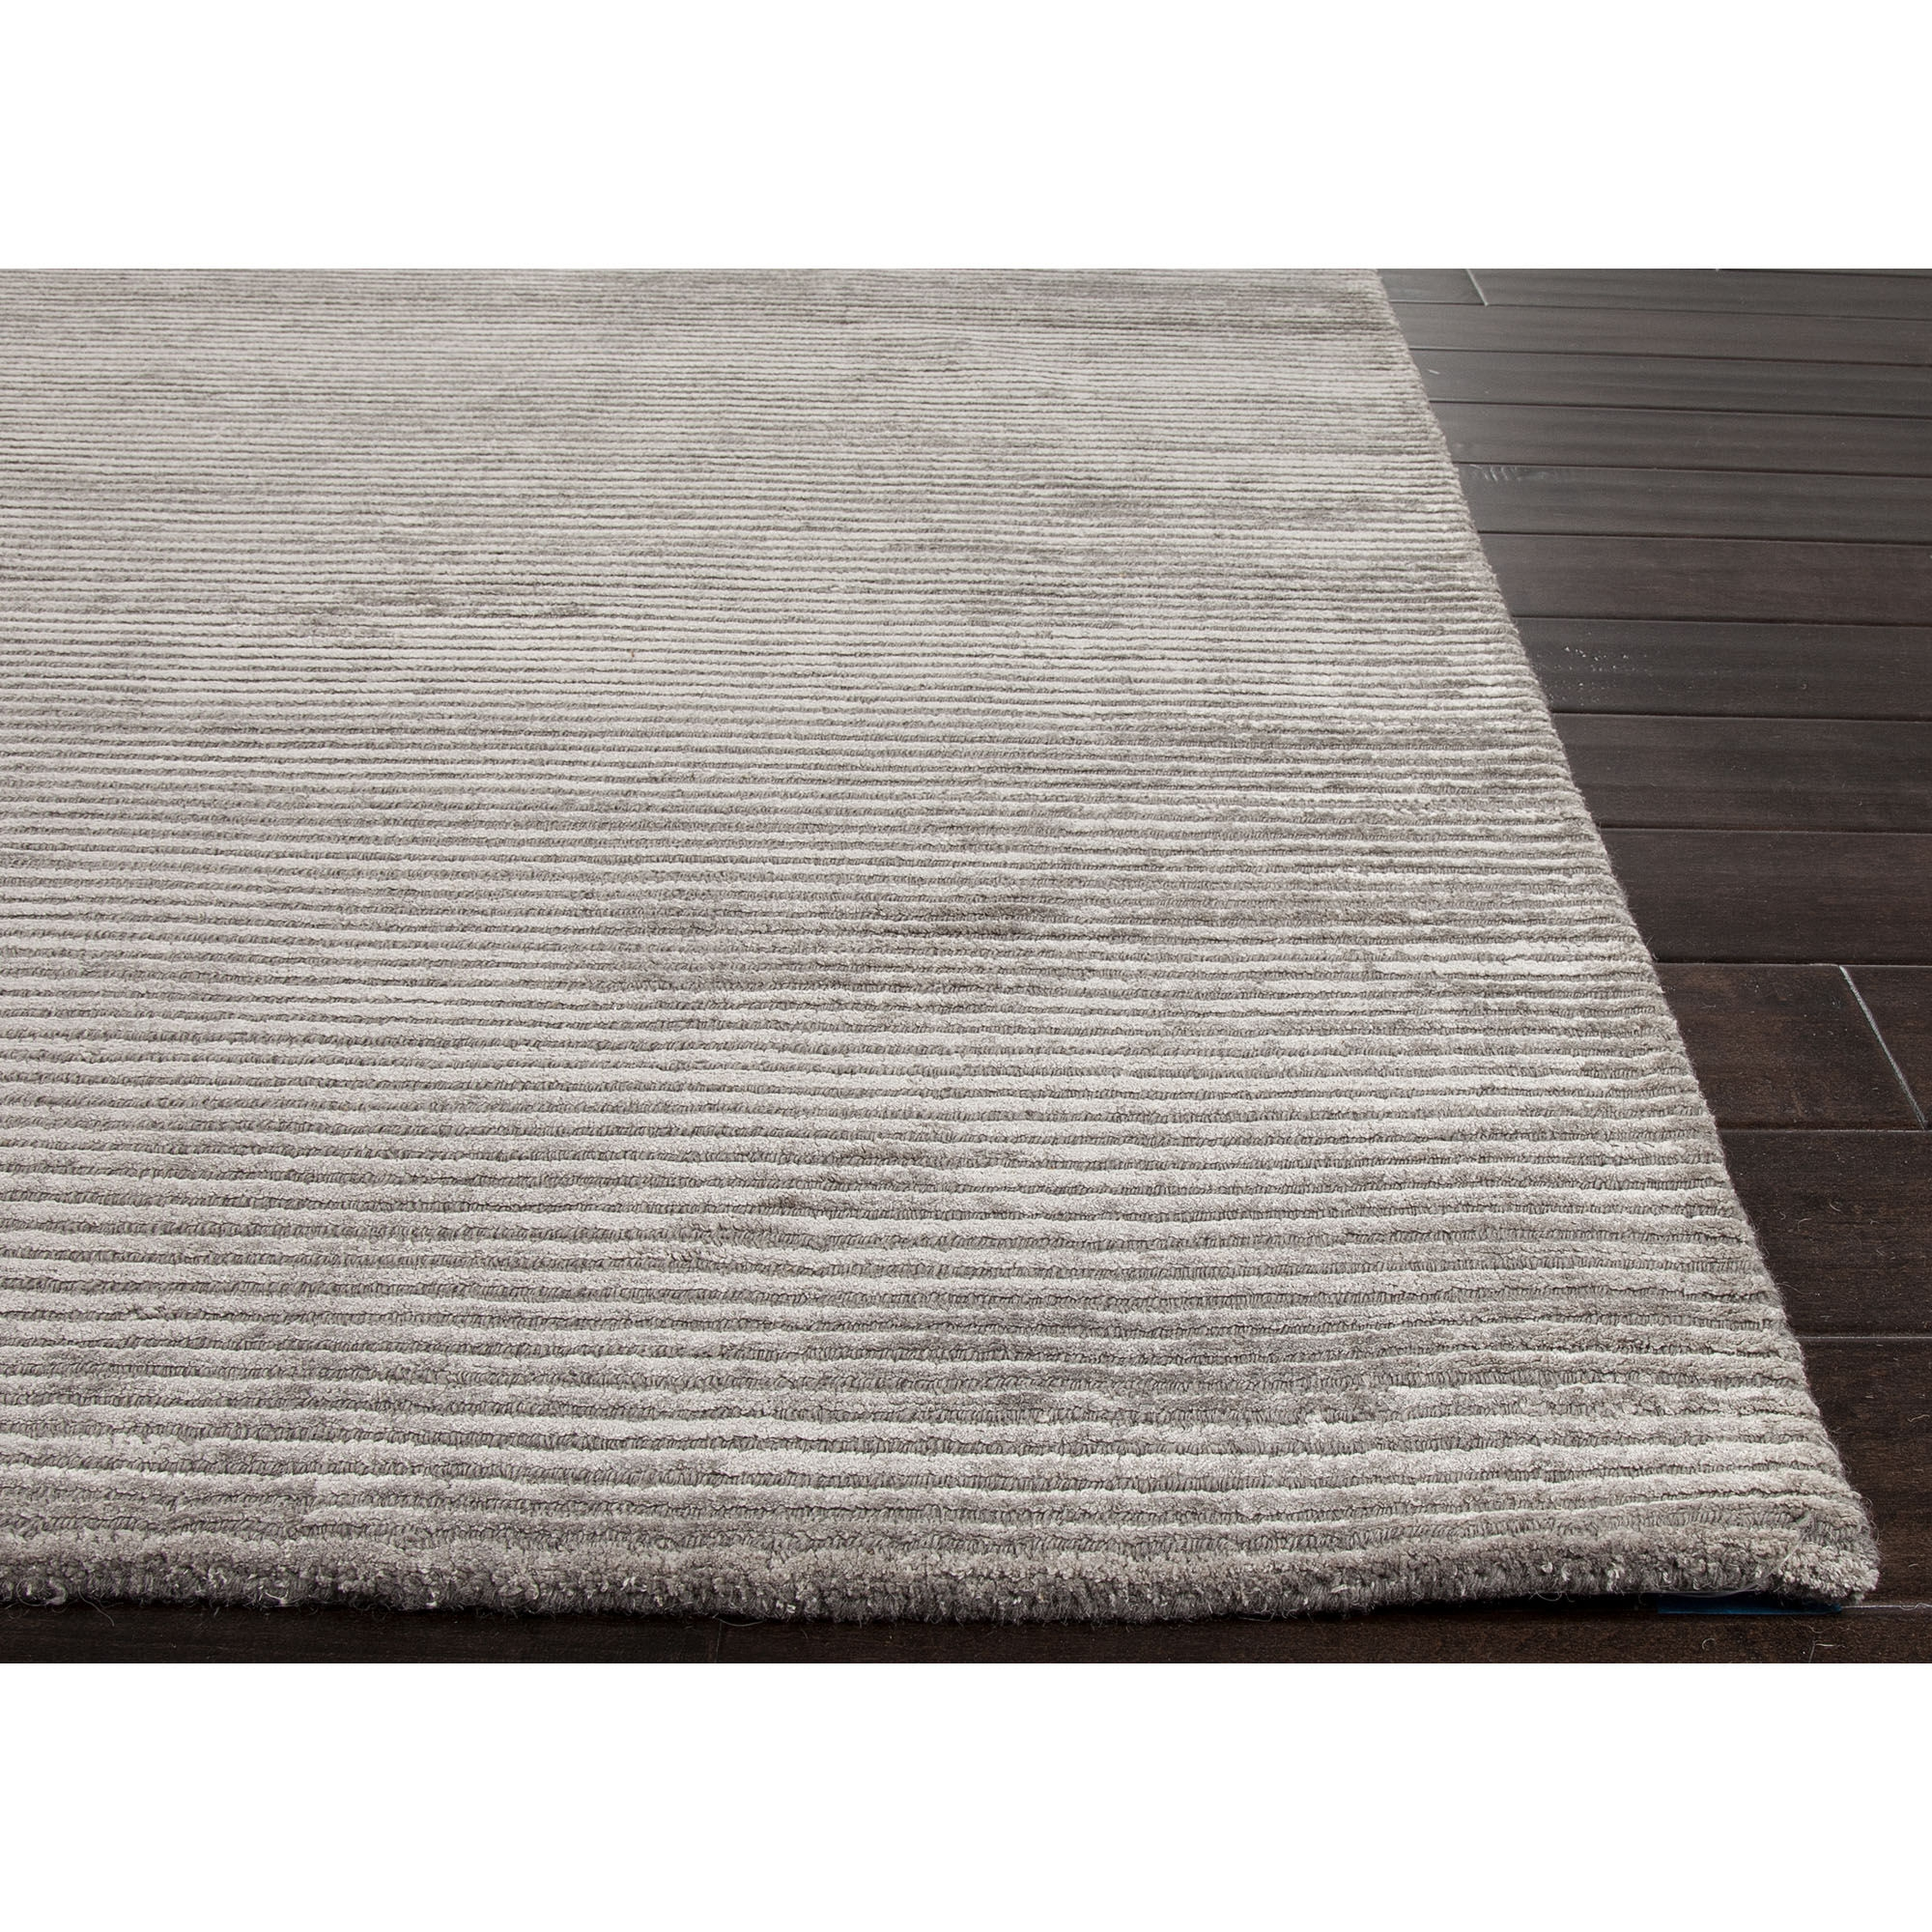 Rugs 8×10 Area Rugs Cheap For Floor And Complements Any Decor In Cheap Silver Rugs (Image 8 of 15)